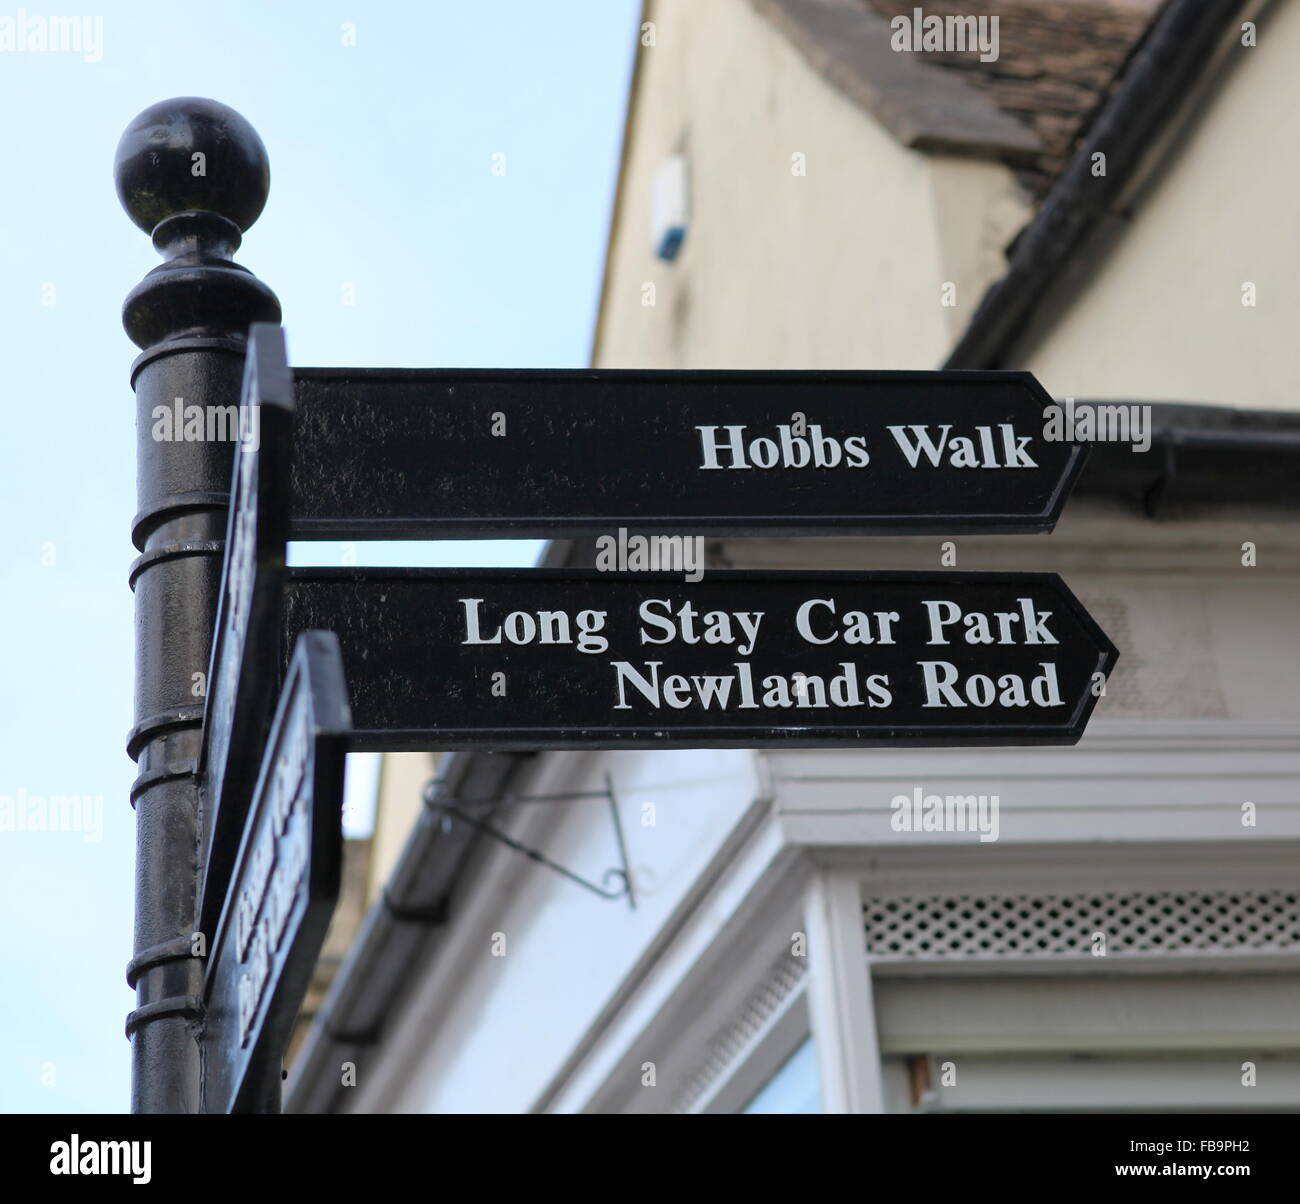 Sign post to Hobbs Walk, Long Stay Car Park and  Newlands road in  Corsham, Wiltshire, UK - Stock Image